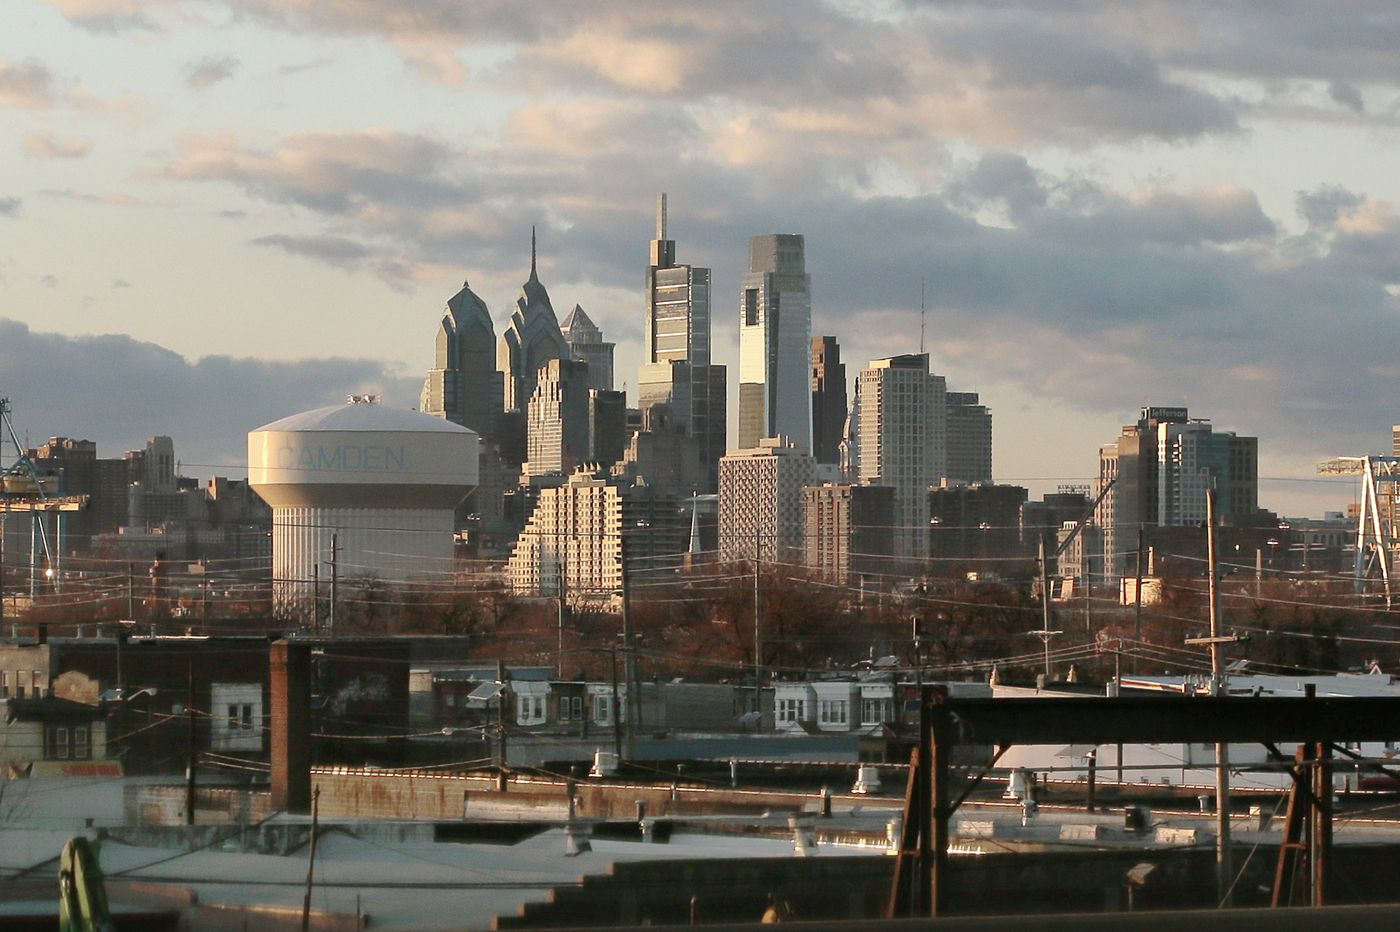 How Comcast, IBX, Vanguard and other Philly businesses are coping with coronavirus